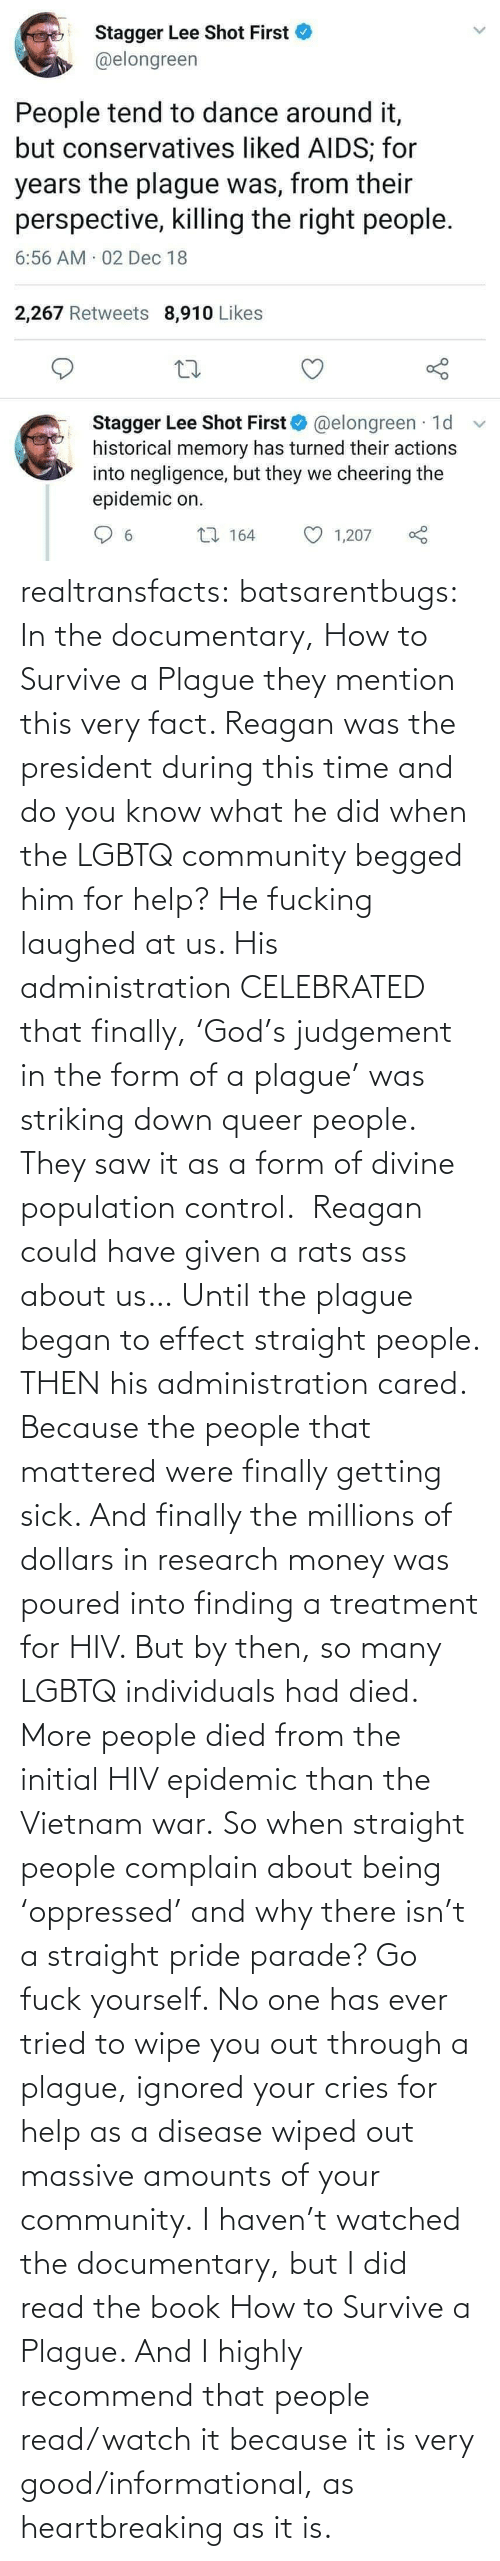 Killing: Stagger Lee Shot First  @elongreen  People tend to dance around it,  but conservatives liked AIDS; for  years the plague was, from their  perspective, killing the right people.  6:56 AM 02 Dec 18  2,267 Retweets 8,910 Likes  Stagger Lee Shot First O @elongreen · 1d  historical memory has turned their actions  into negligence, but they we cheering the  epidemic on.  27 164  1,207  6. realtransfacts:  batsarentbugs:  In the documentary, How to Survive a Plague they mention this very fact. Reagan was the president during this time and do you know what he did when the LGBTQ community begged him for help? He fucking laughed at us. His administration CELEBRATED that finally, 'God's judgement in the form of a plague' was striking down queer people.  They saw it as a form of divine population control.  Reagan could have given a rats ass about us… Until the plague began to effect straight people. THEN his administration cared. Because the people that mattered were finally getting sick. And finally the millions of dollars in research money was poured into finding a treatment for HIV. But by then, so many LGBTQ individuals had died.  More people died from the initial HIV epidemic than the Vietnam war. So when straight people complain about being 'oppressed' and why there isn't a straight pride parade? Go fuck yourself. No one has ever tried to wipe you out through a plague, ignored your cries for help as a disease wiped out massive amounts of your community.  I haven't watched the documentary, but I did read the book  How to Survive a Plague. And I highly recommend that people read/watch it because it is very good/informational, as heartbreaking as it is.